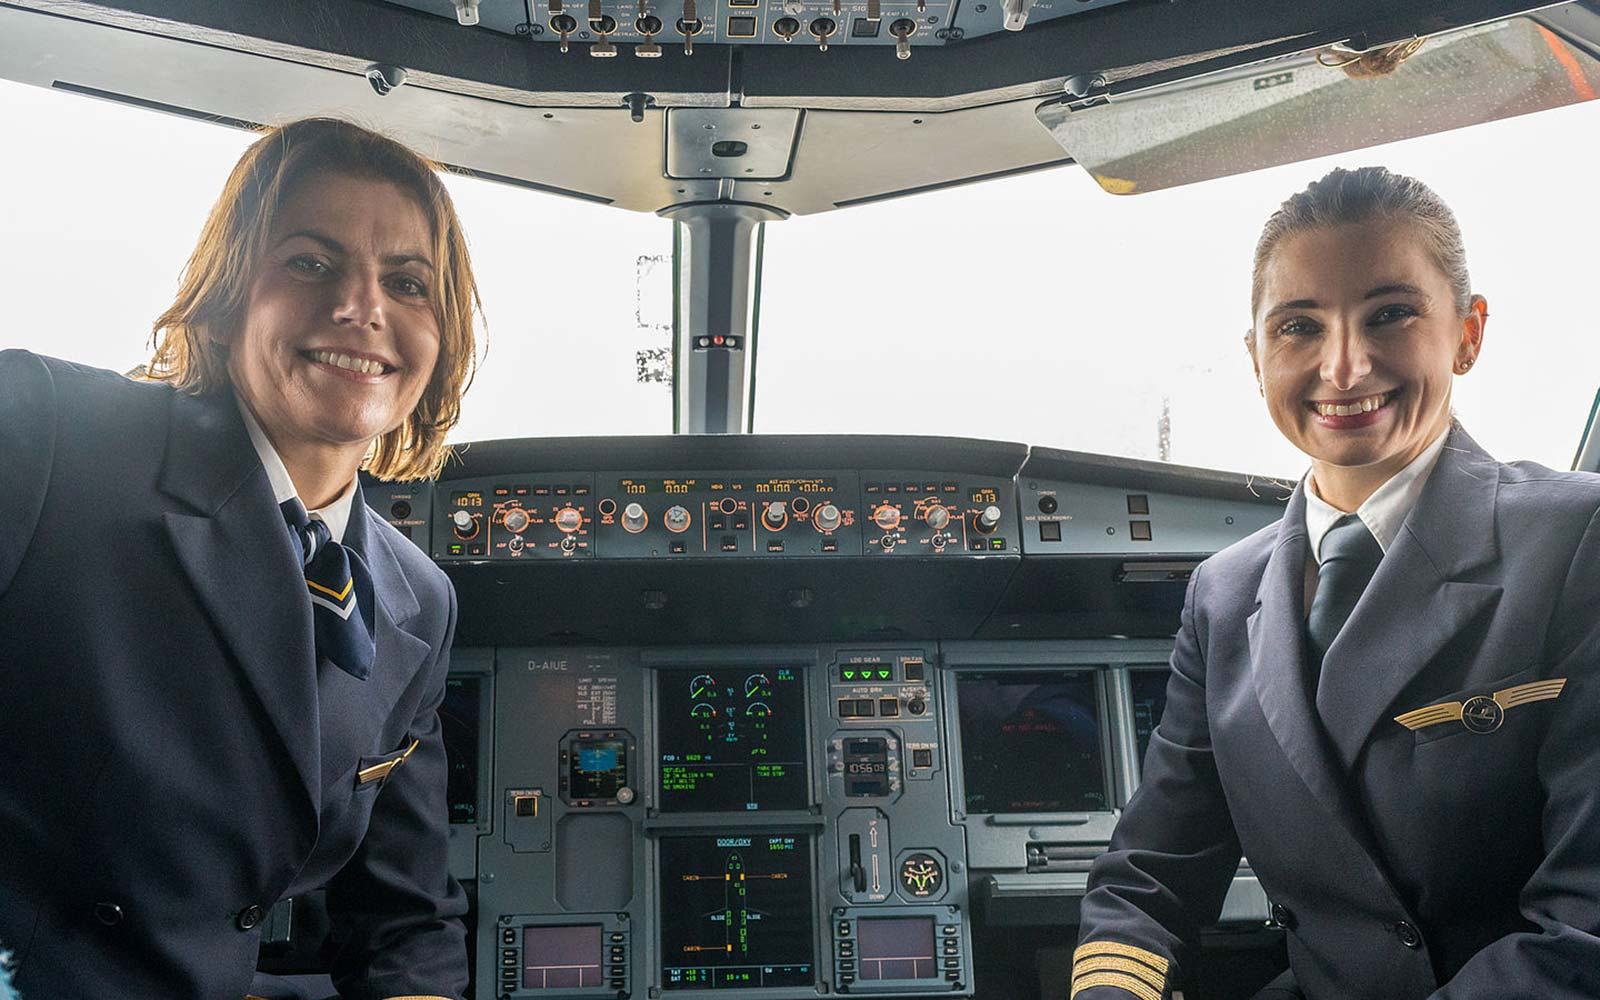 Lufthansa Put All-female Flight Crews in Control on International Women's Day